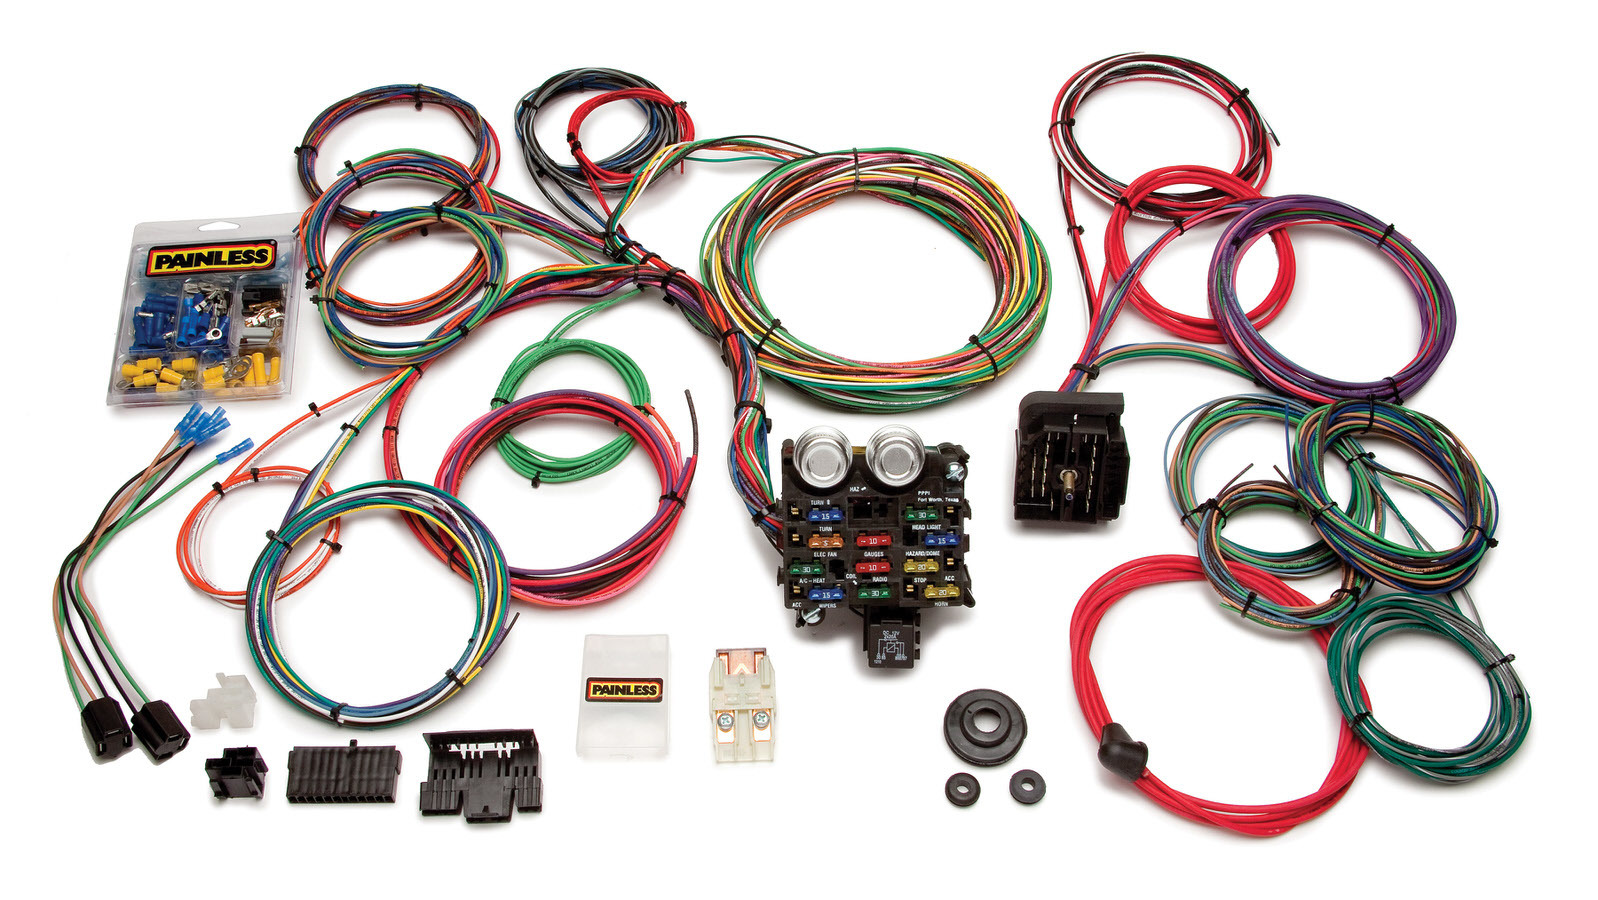 Painless Wiring 20103 Car Wiring Harness  Classic Customizable Muscle Car  Complete  21 Circuit